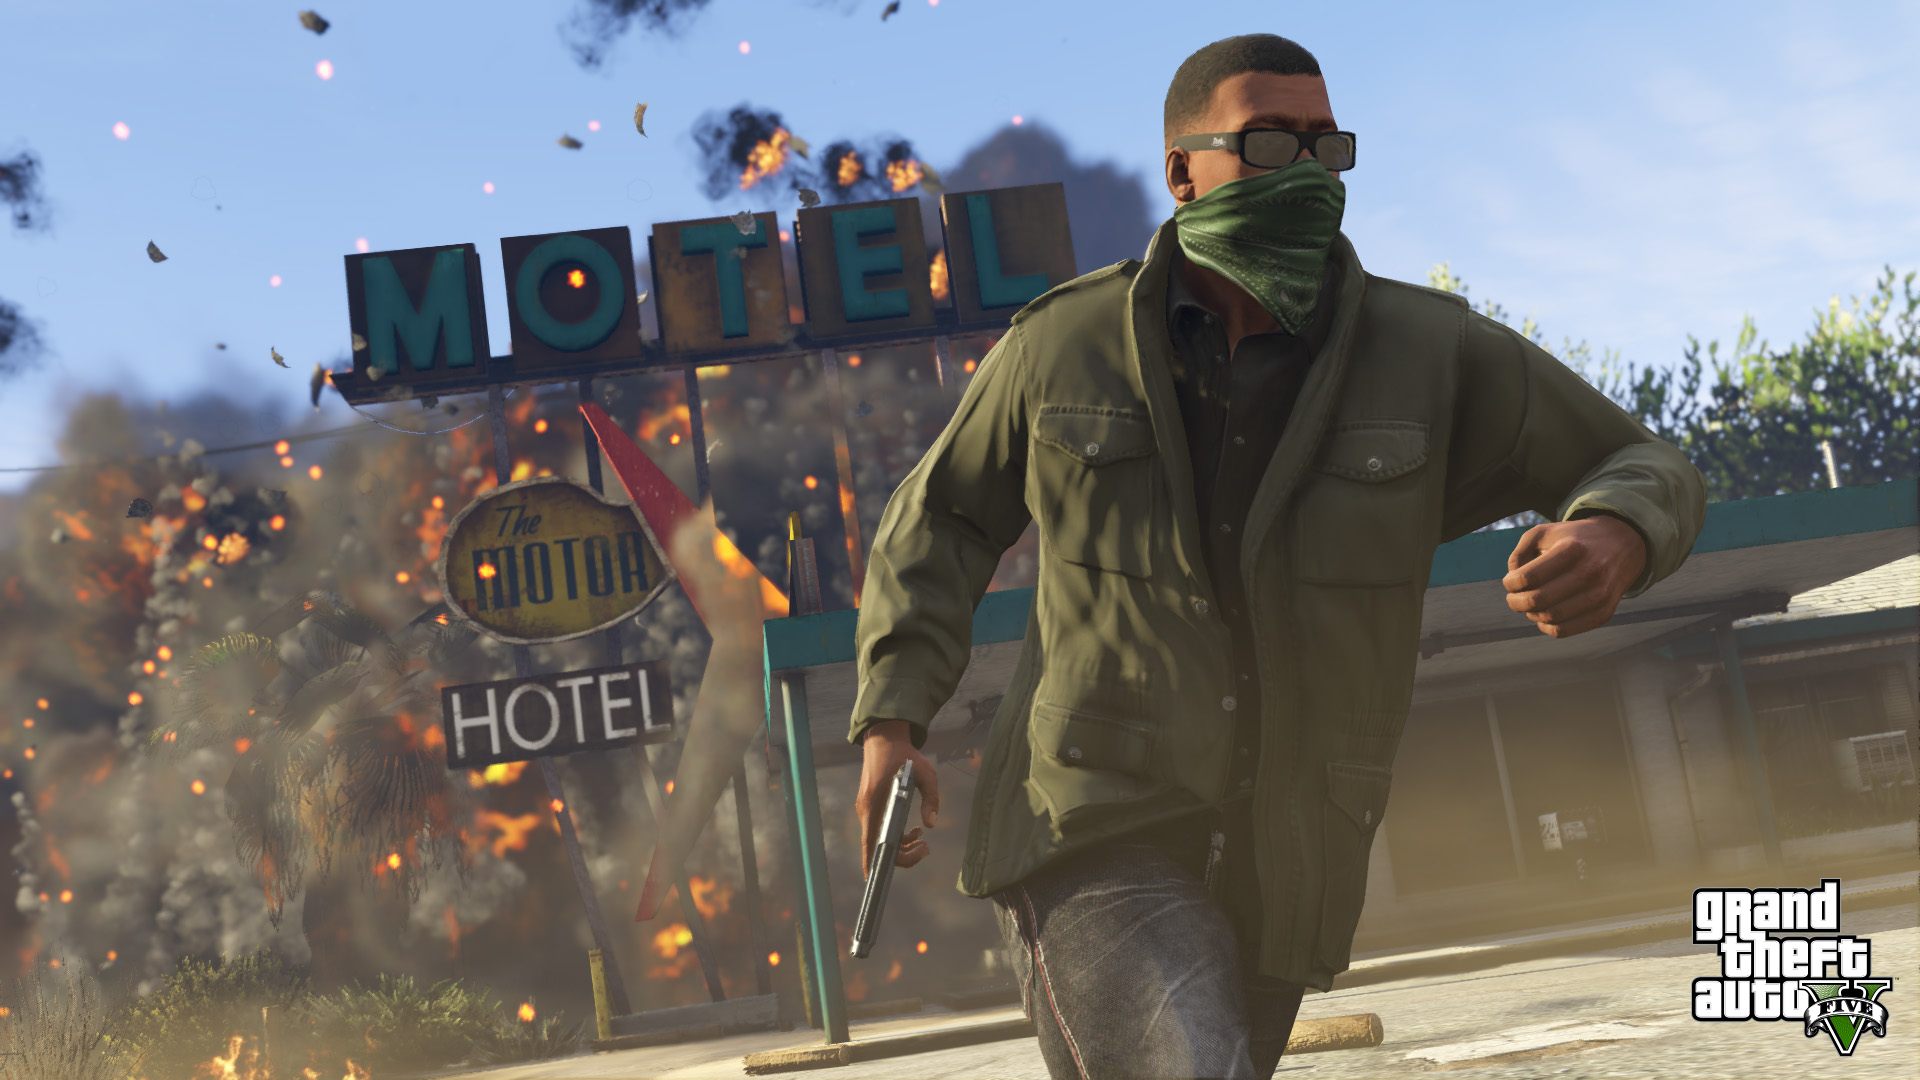 A new GTA is in the works, and it'll reportedly be smaller in scope at launch screenshot